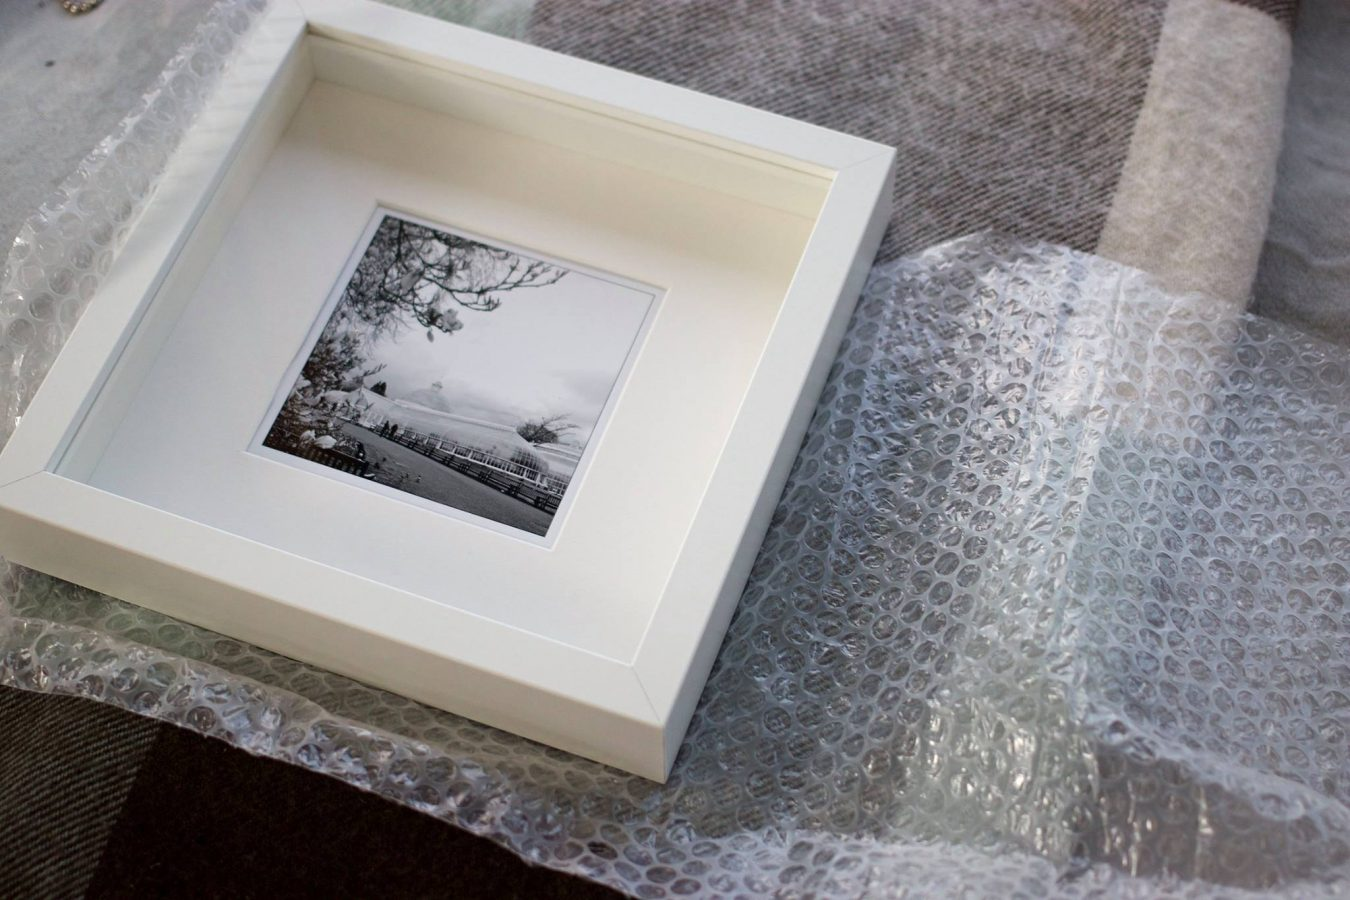 Packaging up a framed photo of The Kibble Palace